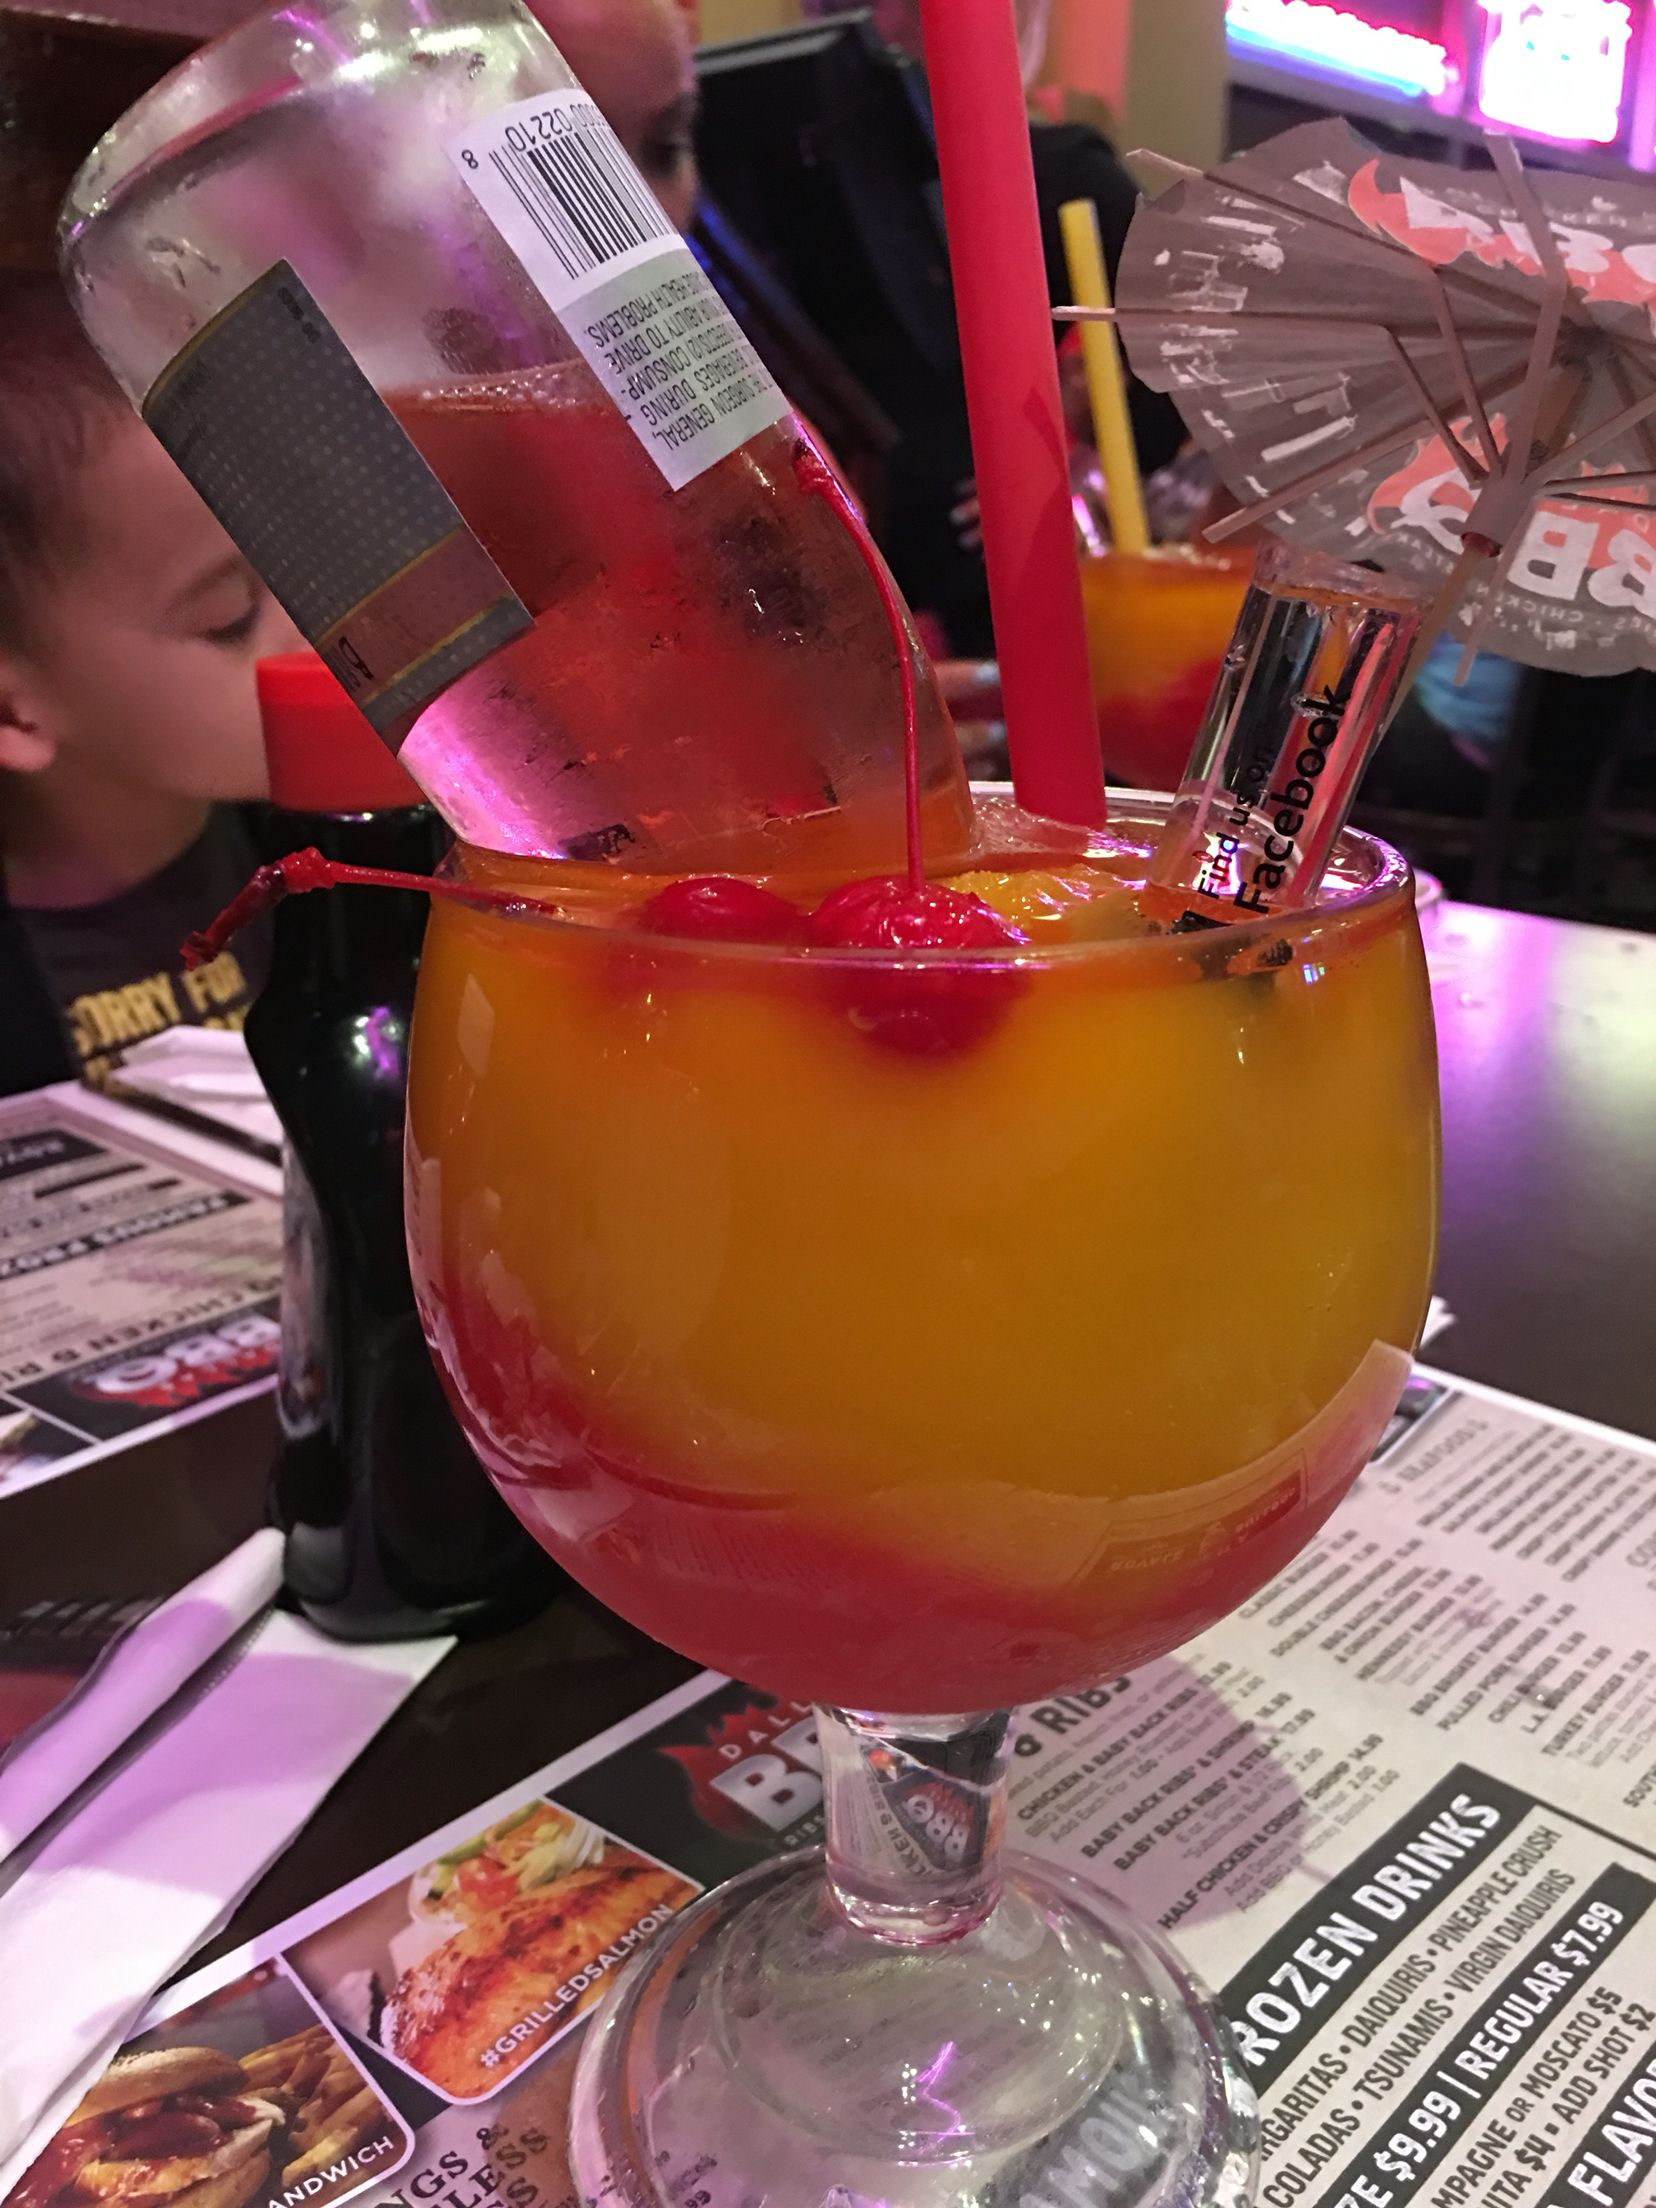 Strawberry Peach Slush With A Shot Of Coconut Rum Whichever Brand You Desire And A Mini Bottle Of Pink Barefoot Moscato